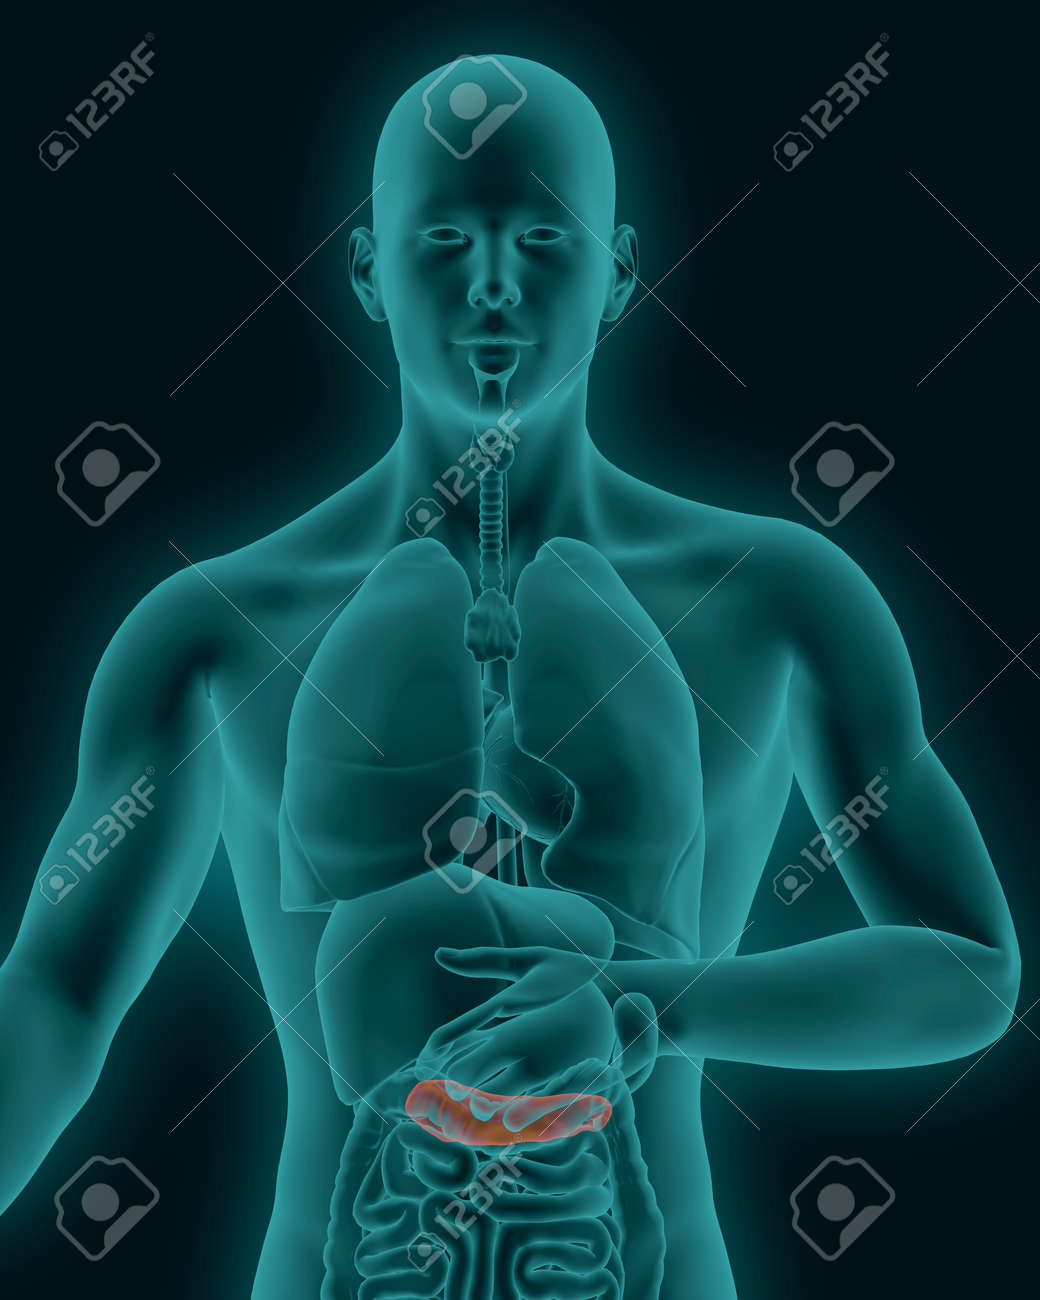 Anatomy Of Human Inflamed Pancreas With Digestive Organs In X-ray ...